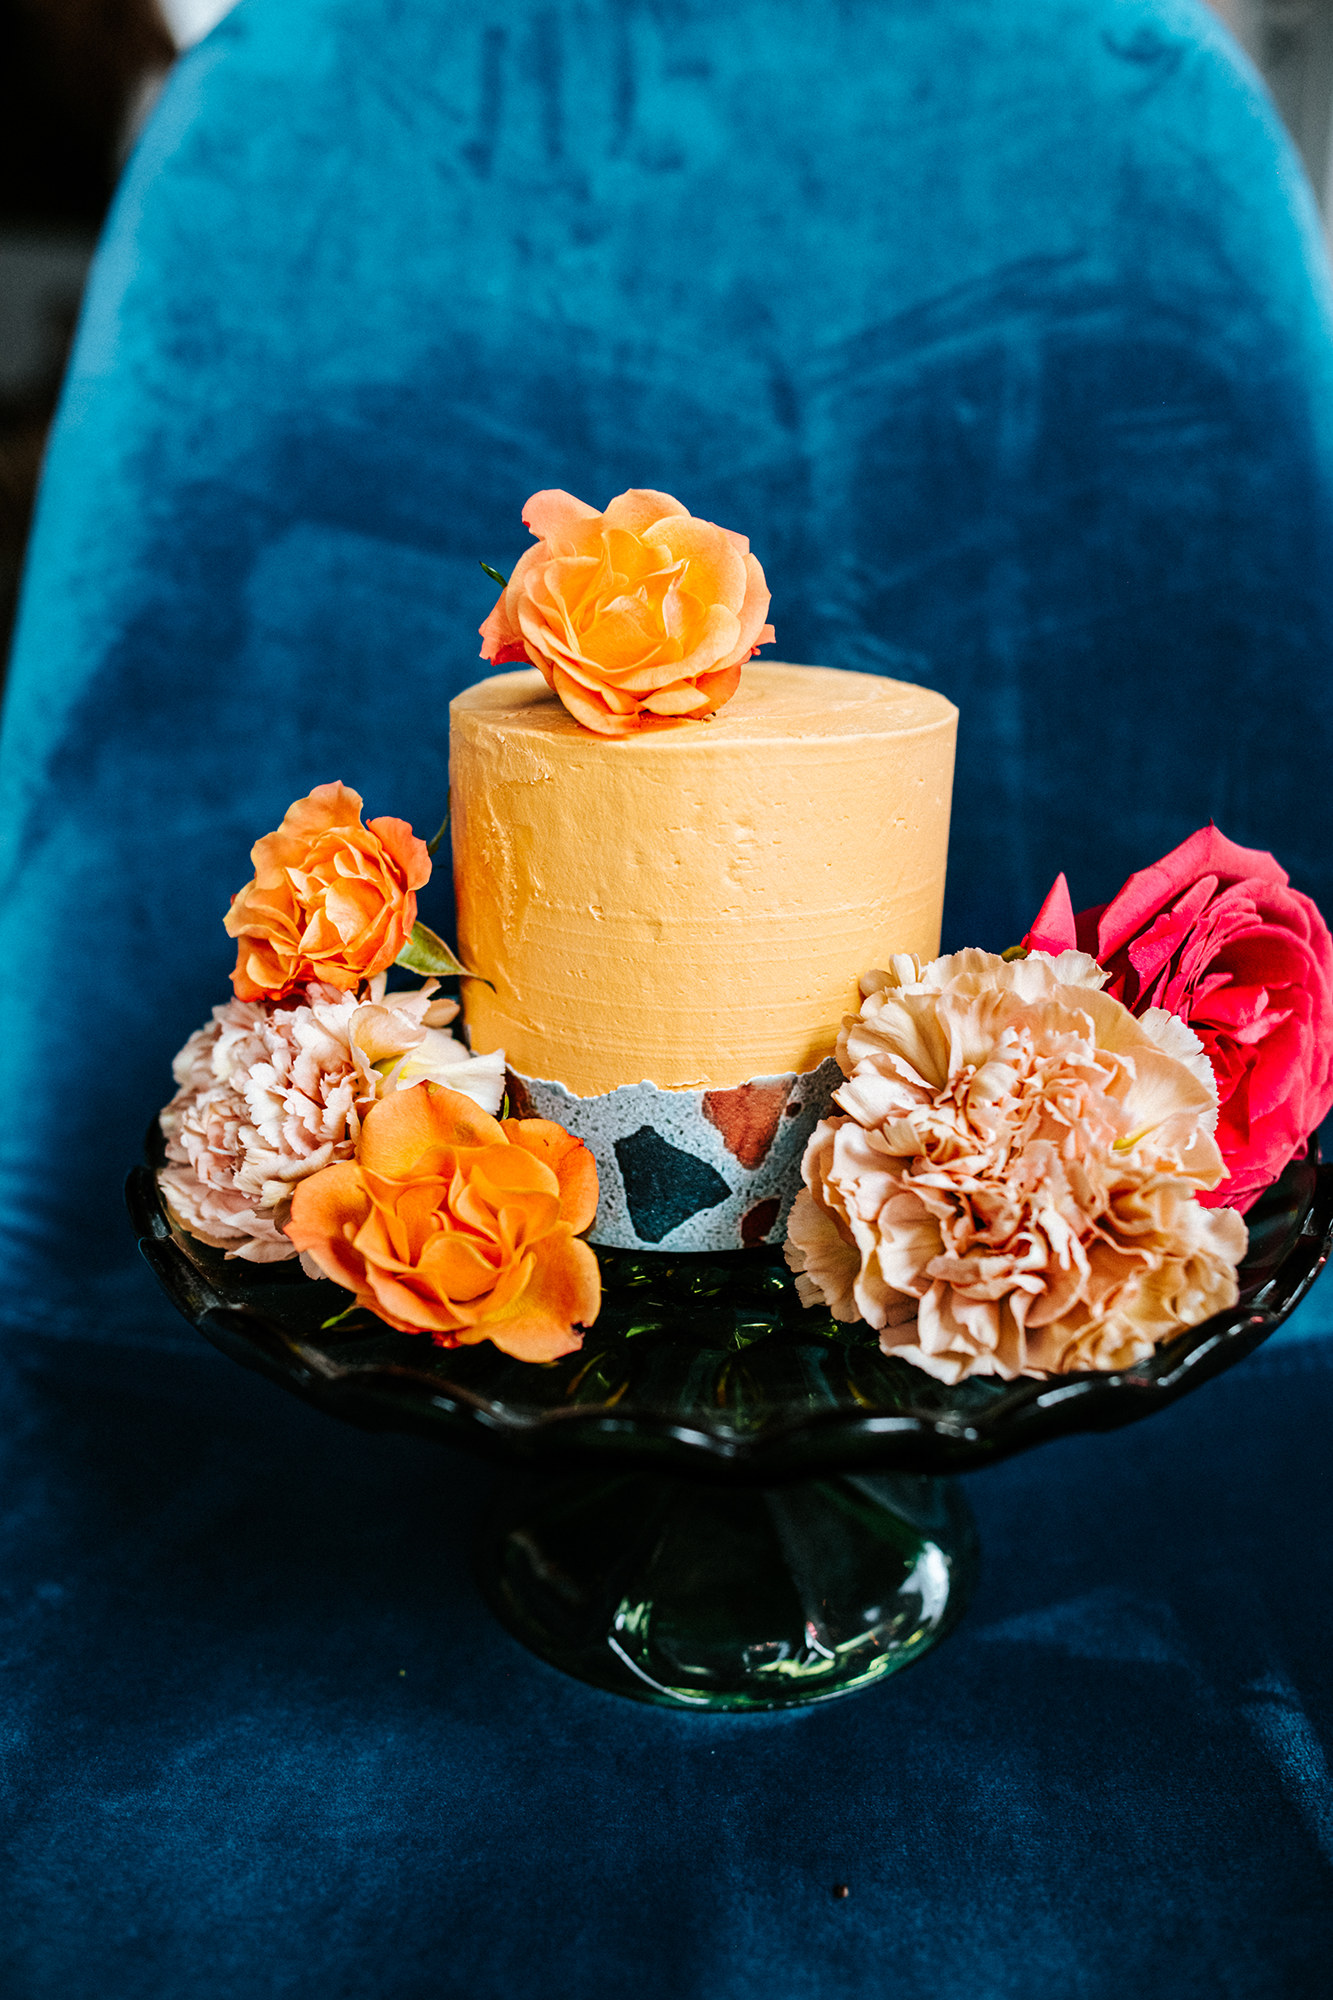 Terrazzo cake with colorful flowers